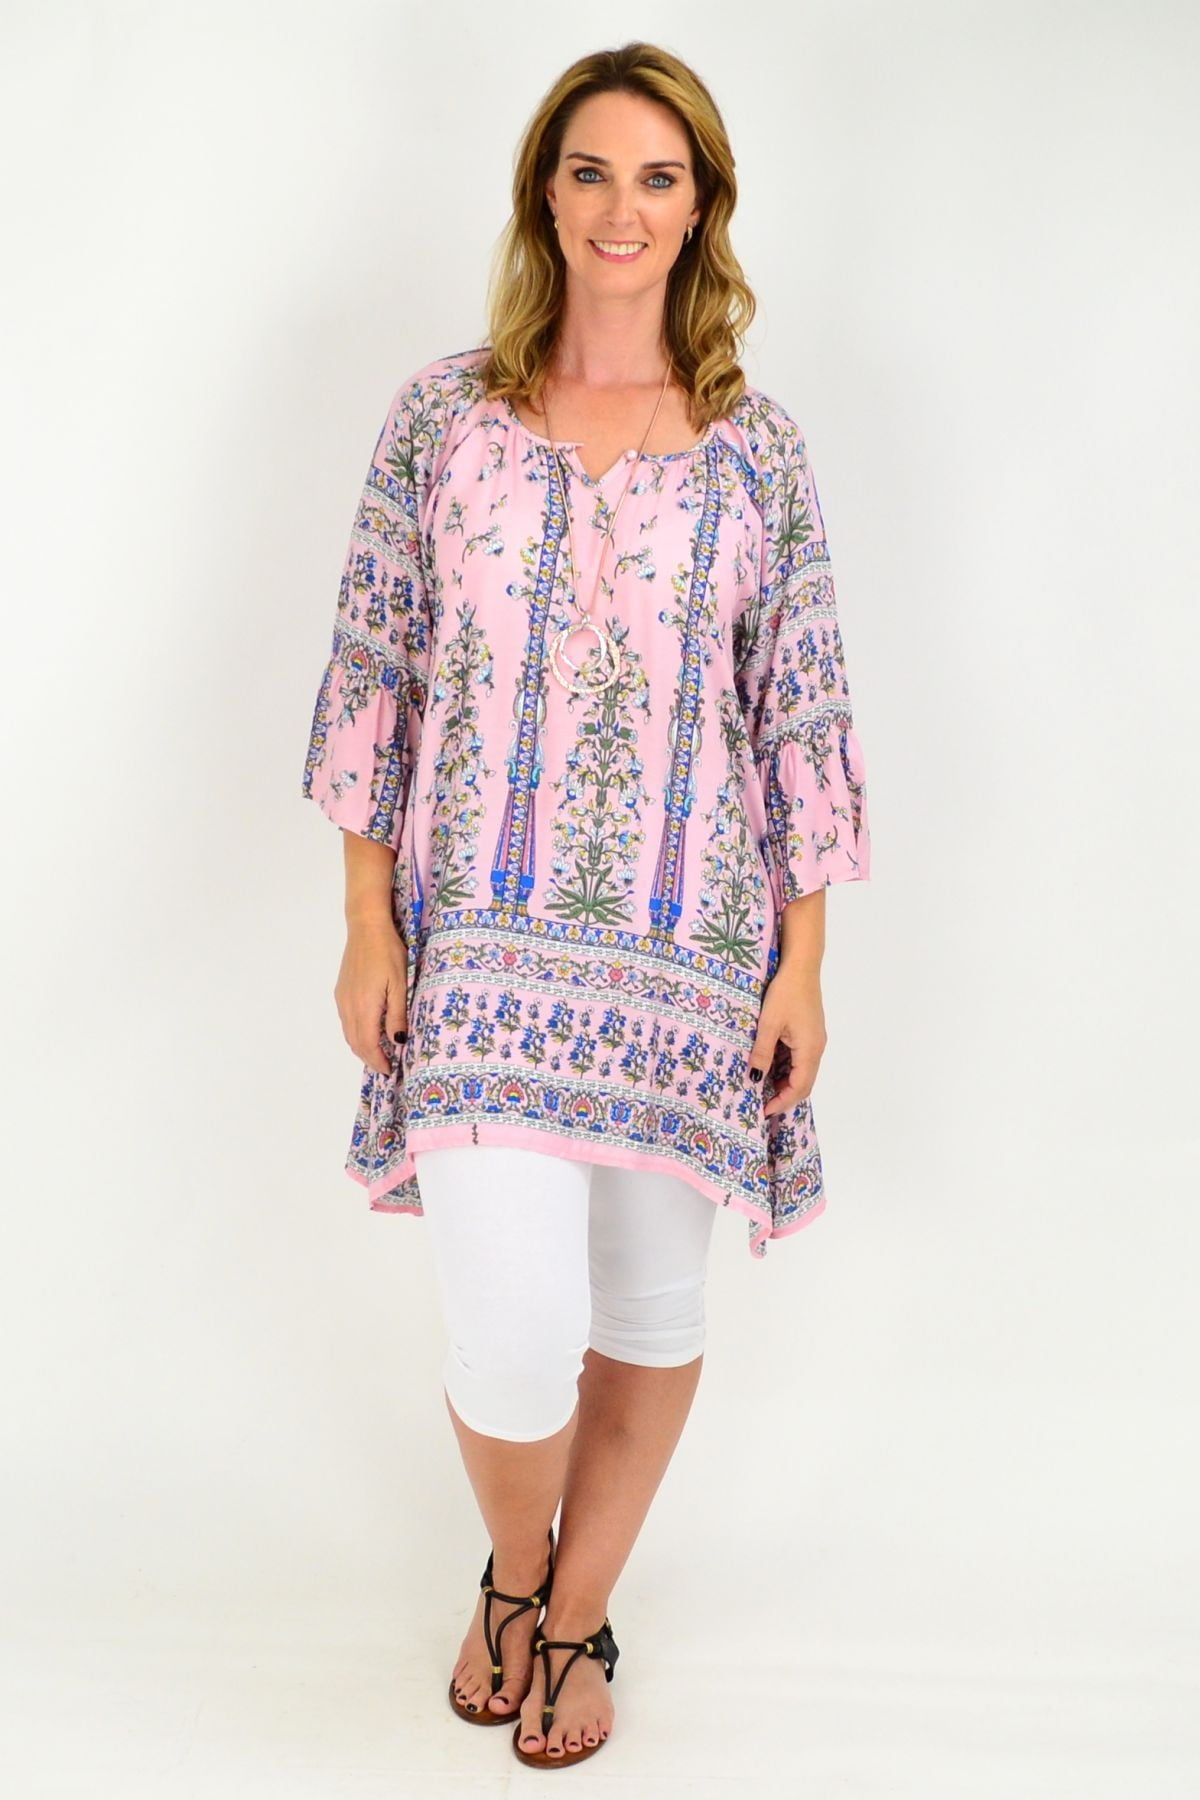 Pink Floral Bell Cuff Tunic Top | I Love Tunics | Tunic Tops | Tunic | Tunic Dresses  | womens clothing online